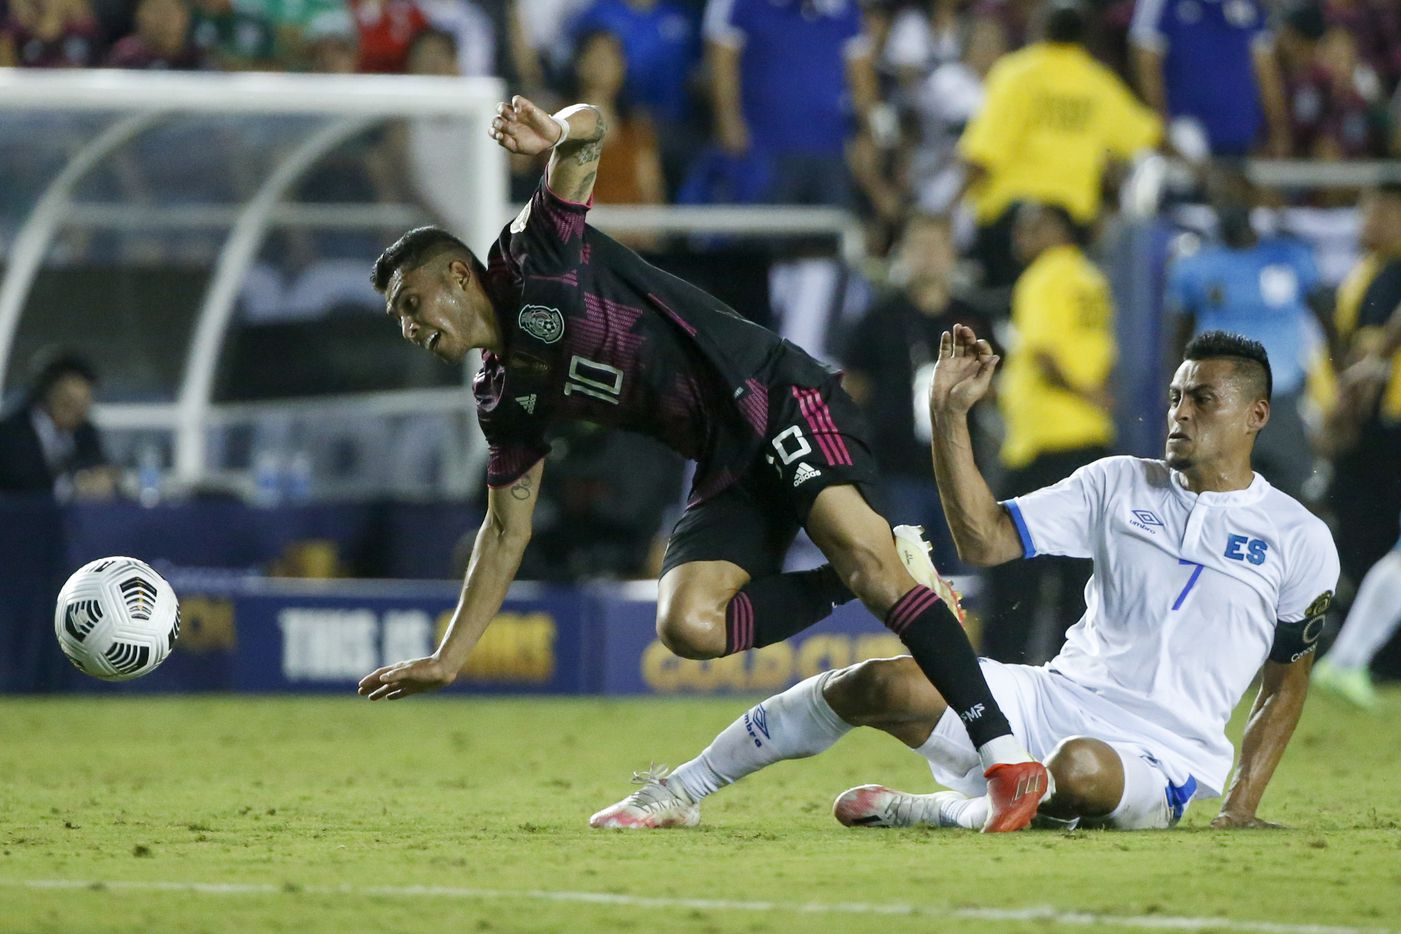 El Salvador midfielder Darwin Cerén (7) tackles Mexico midfielder Orbelín Pineda (10) during the second half of a CONCACAF Gold Cup Group A soccer match at the Cotton Bowl on Sunday, July 18, 2021, in Dallas. (Elias Valverde II/The Dallas Morning News)